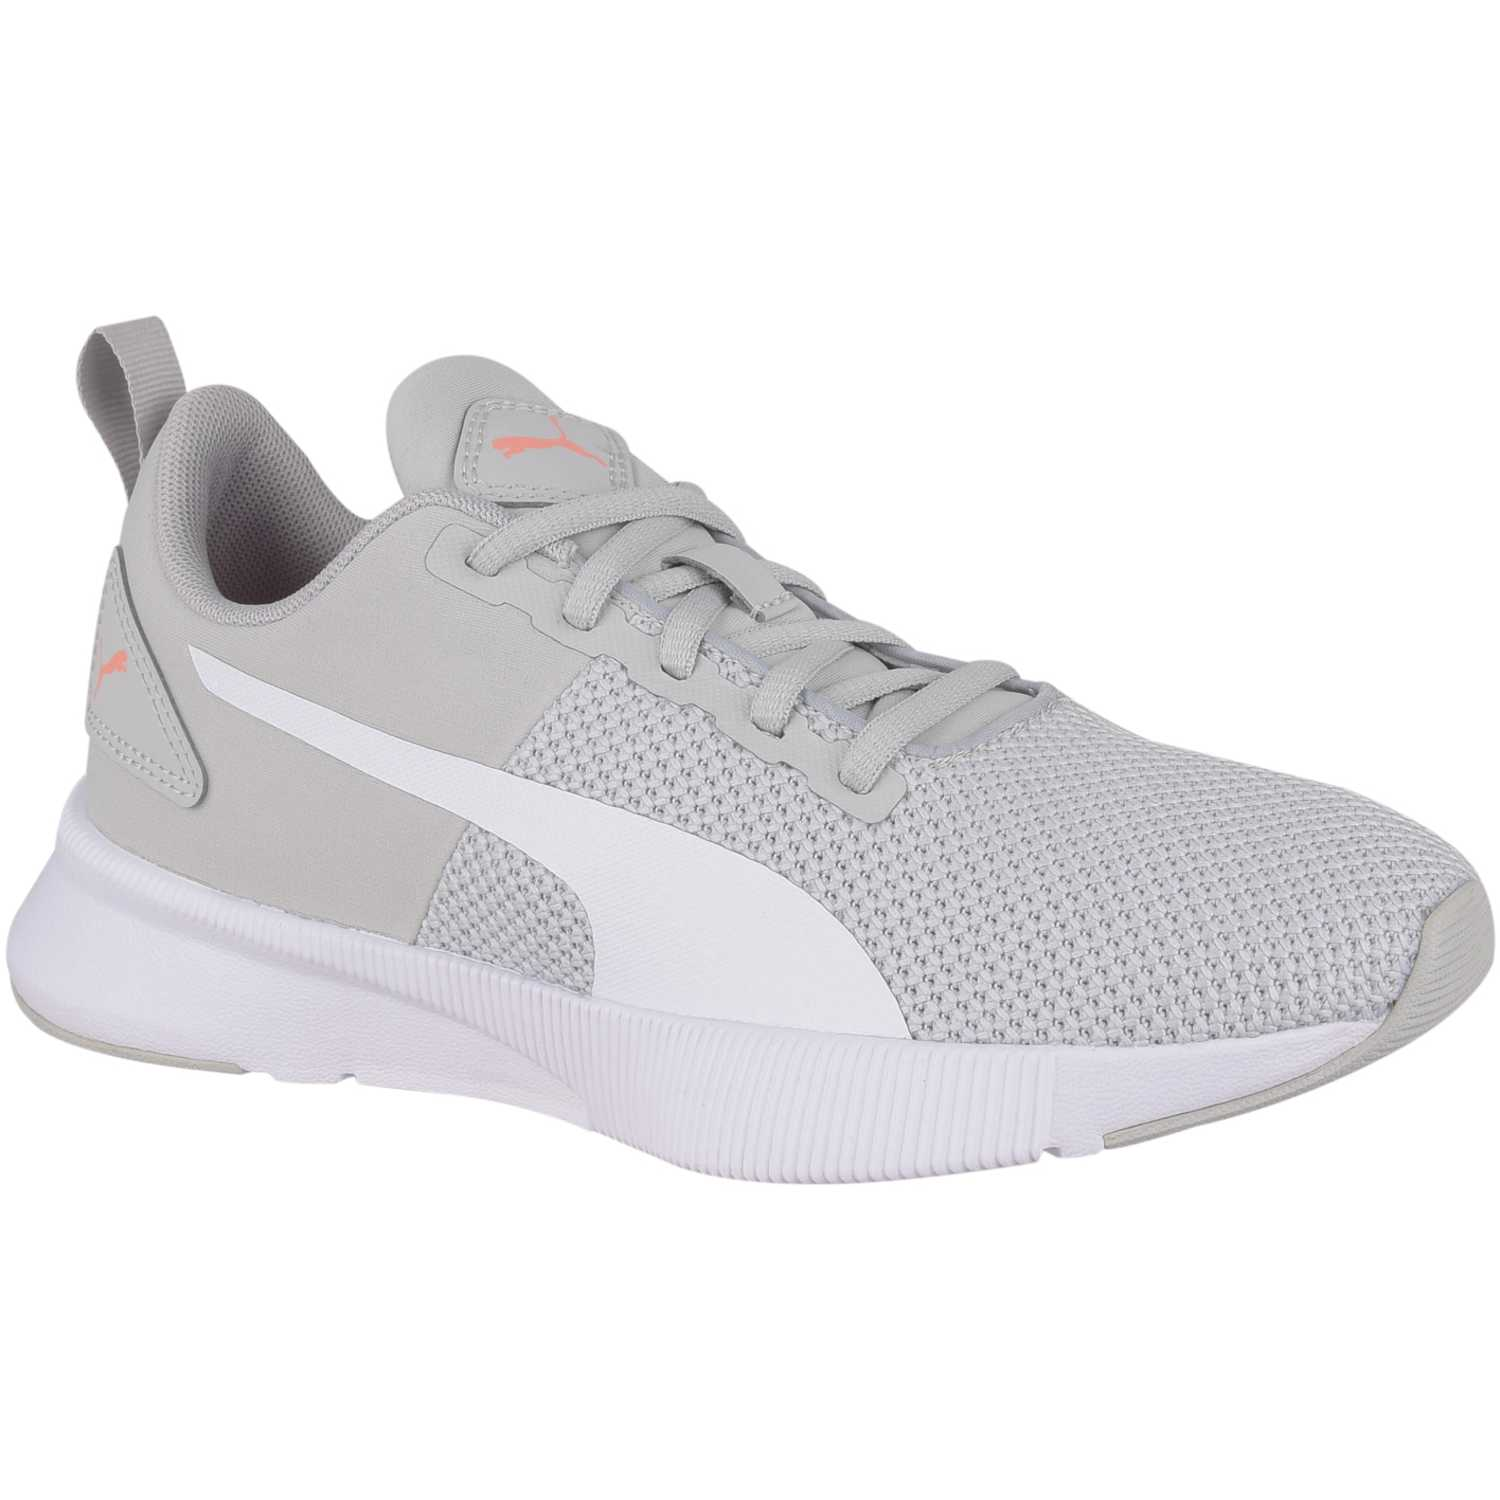 Puma FLYER RUNNER Gris Chicas